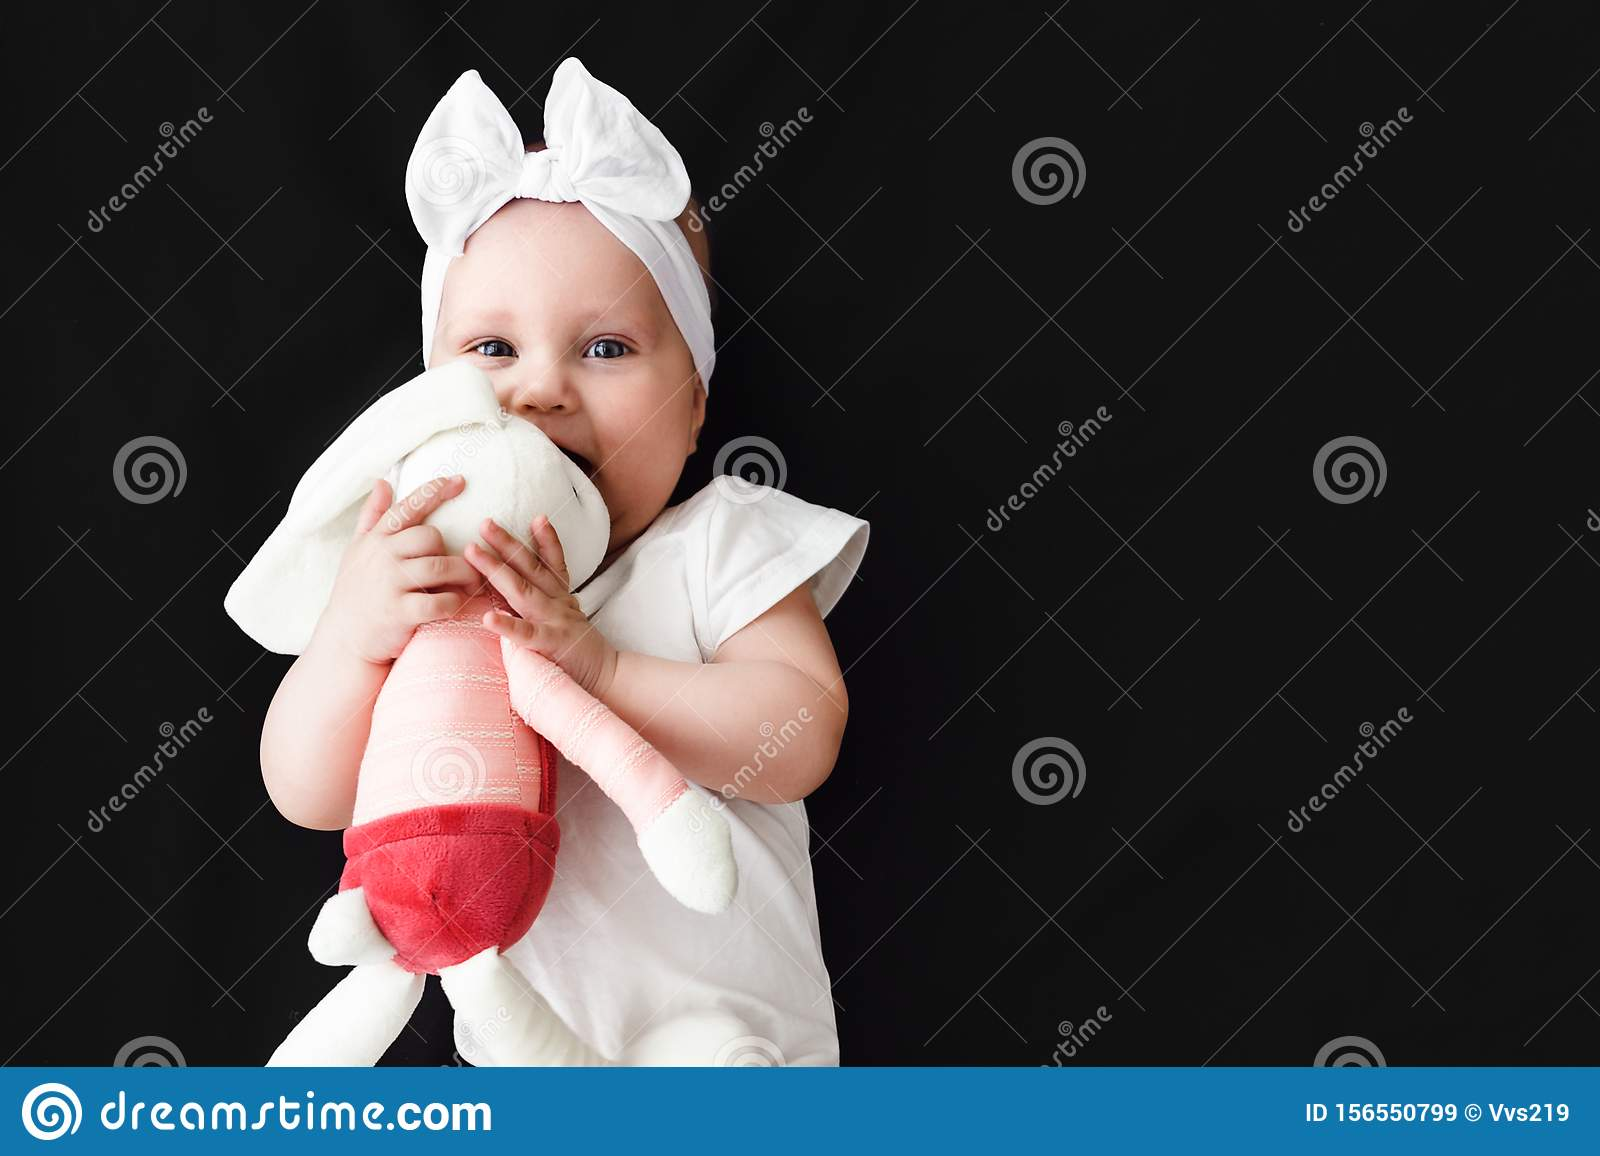 Cute cheerful baby girl wearing white clothes with rabbit toy on black background